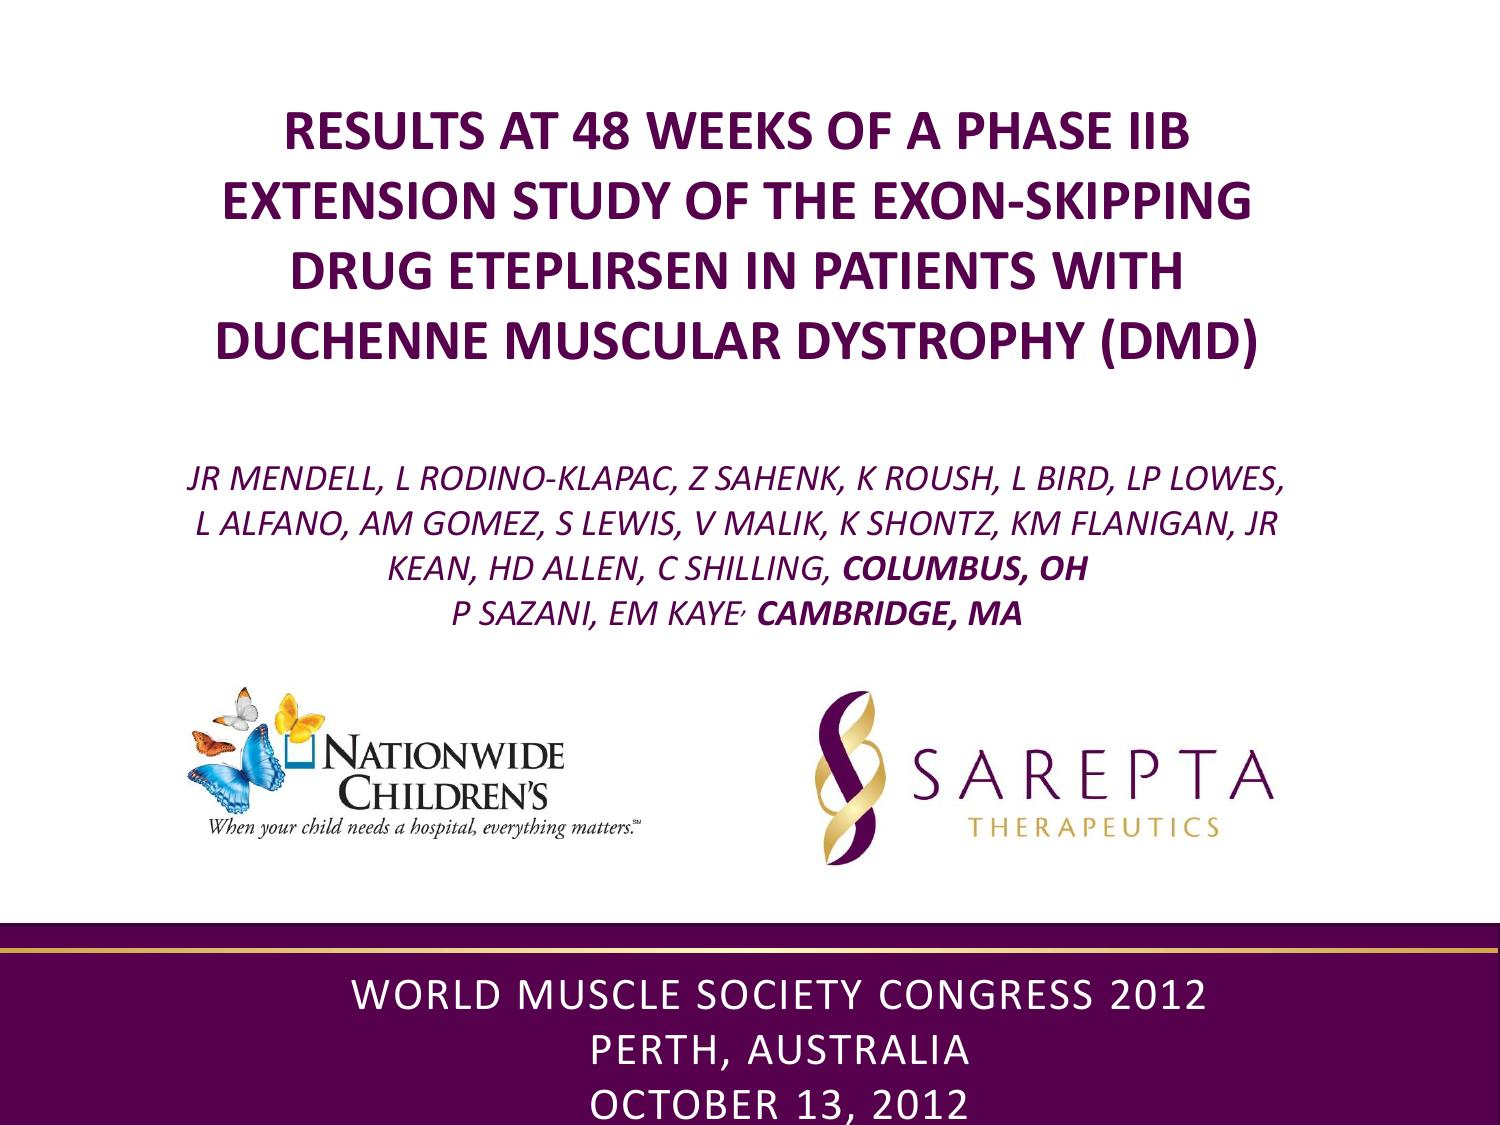 Duchenne Muscular Dystrophy Death Statistics Full 48 Week Phase Iib Data From Eteplirsen Study In